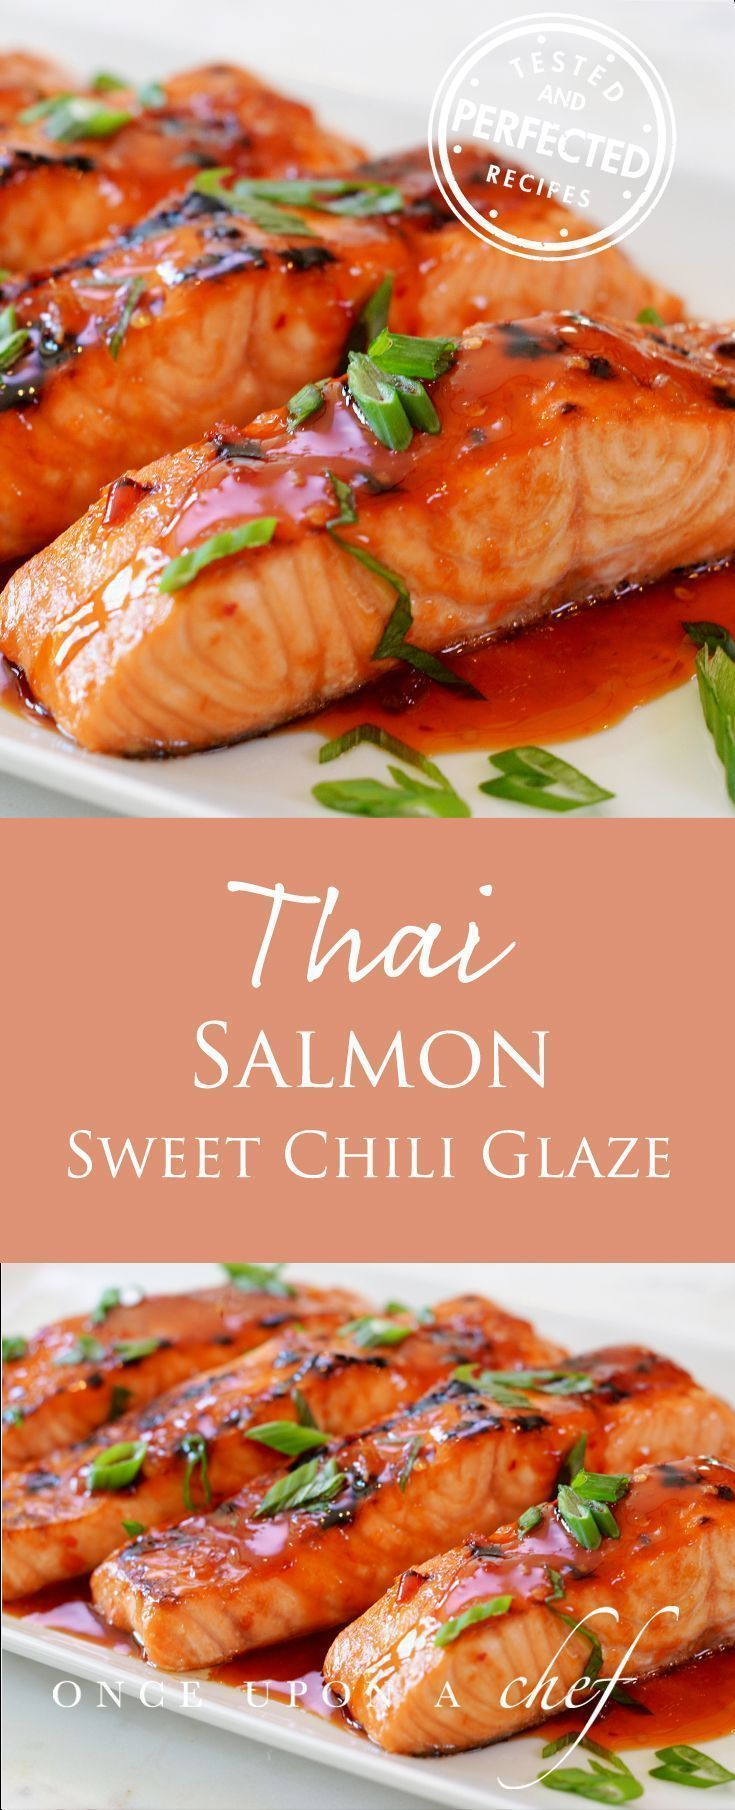 Broiled Salmon with Thai Sweet Chili Glaze #salmonrecipes #seafoodrecipes